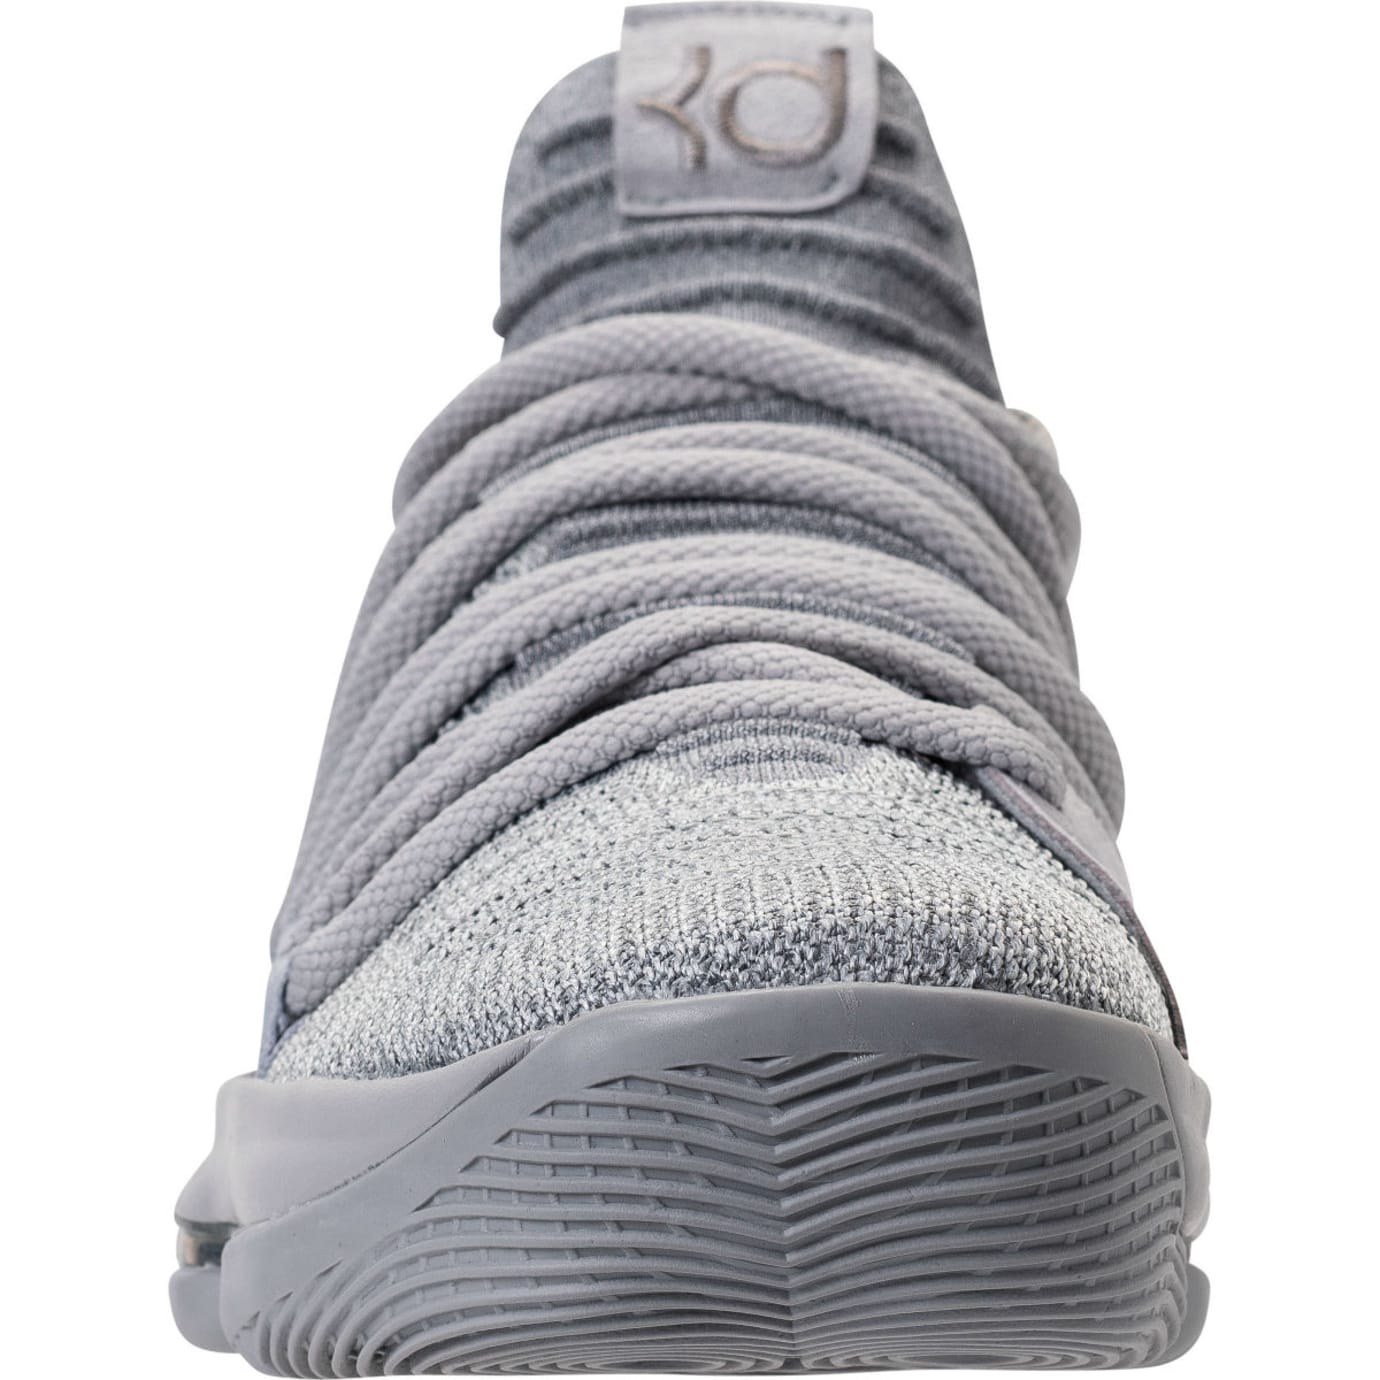 Nike KD 10 Wolf Grery Cool Grey Release Date Front